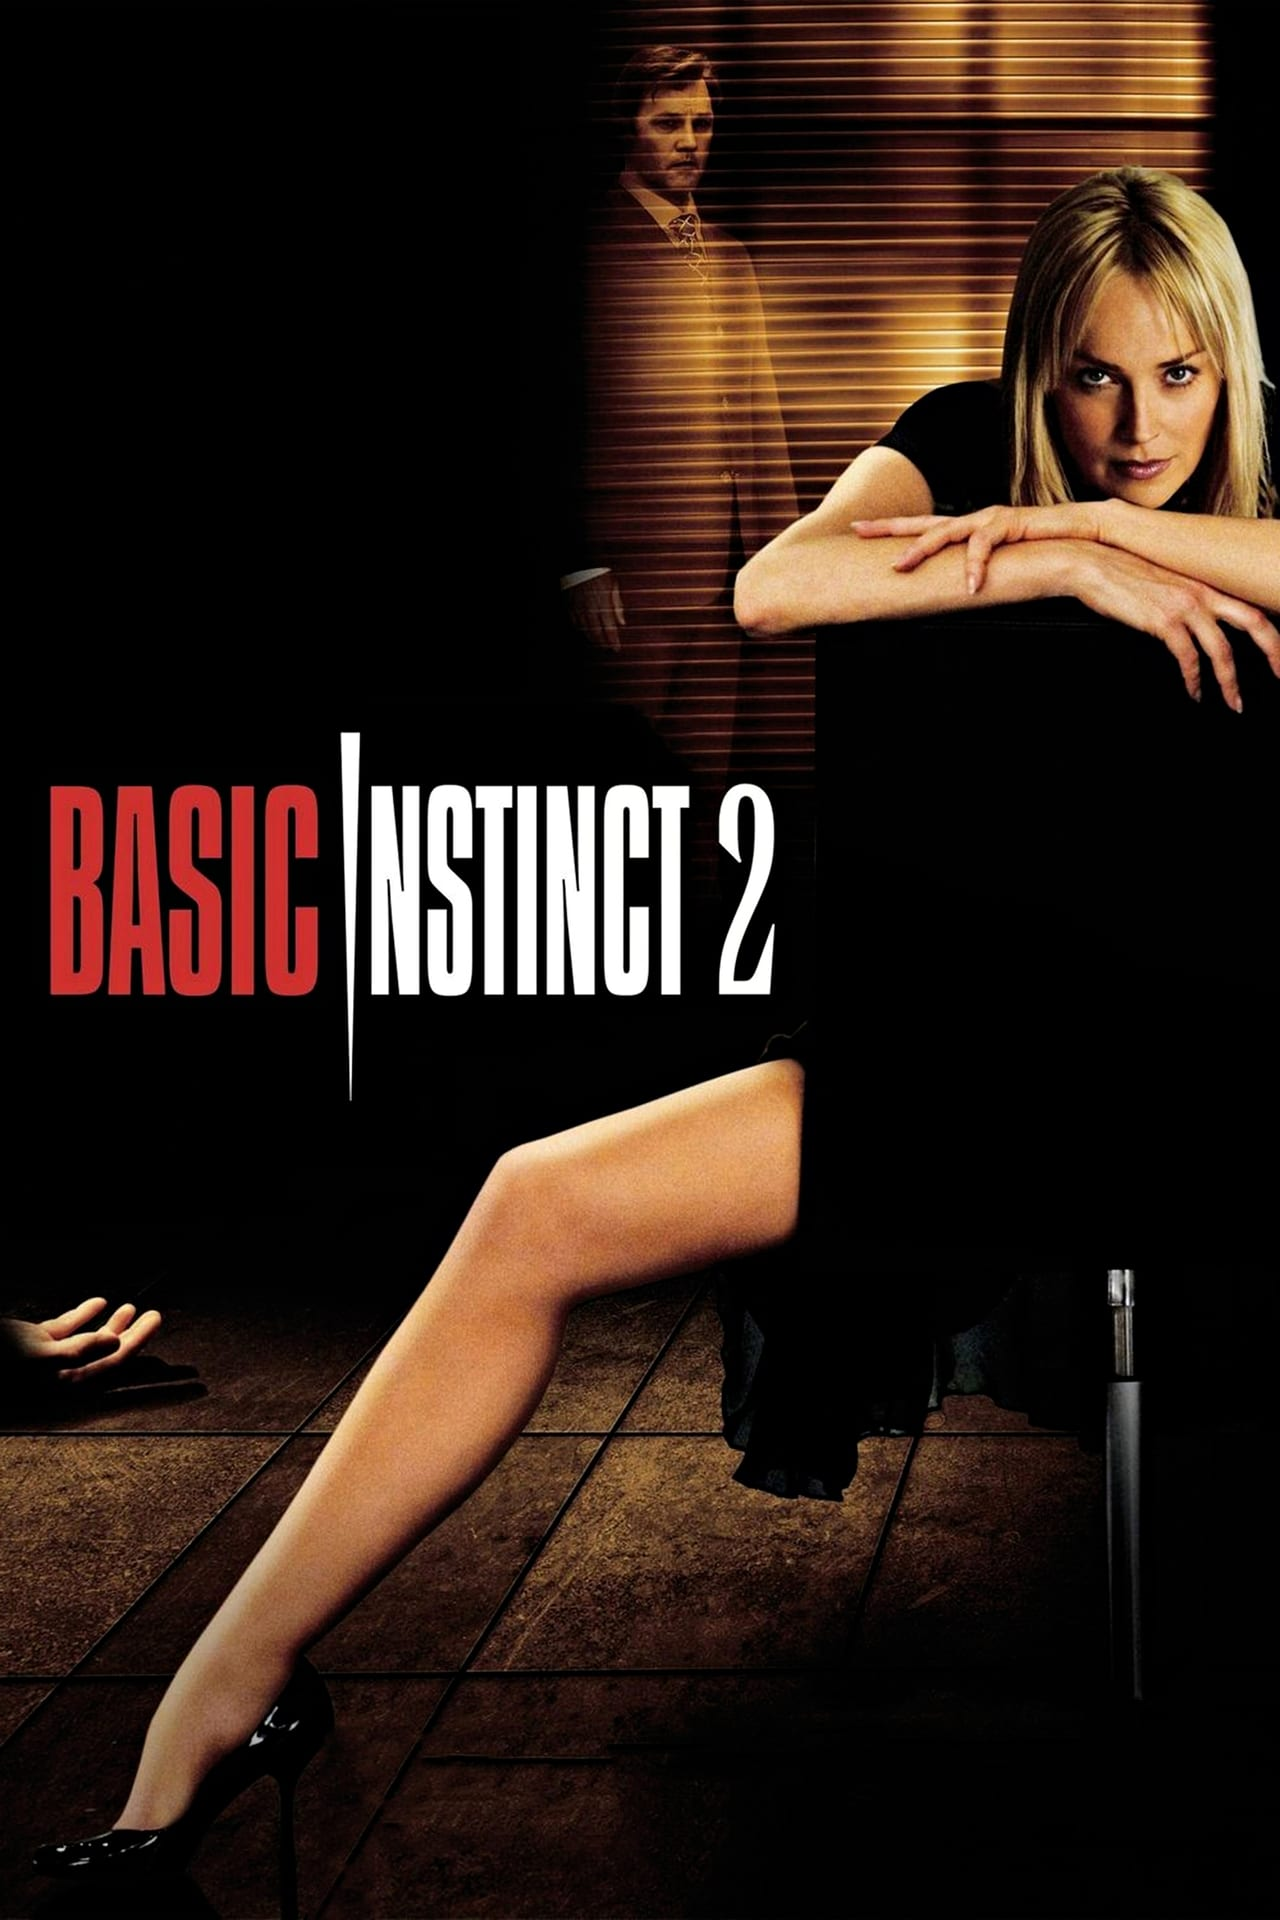 Basic Instinct 2 Full Movie With English Subtitles